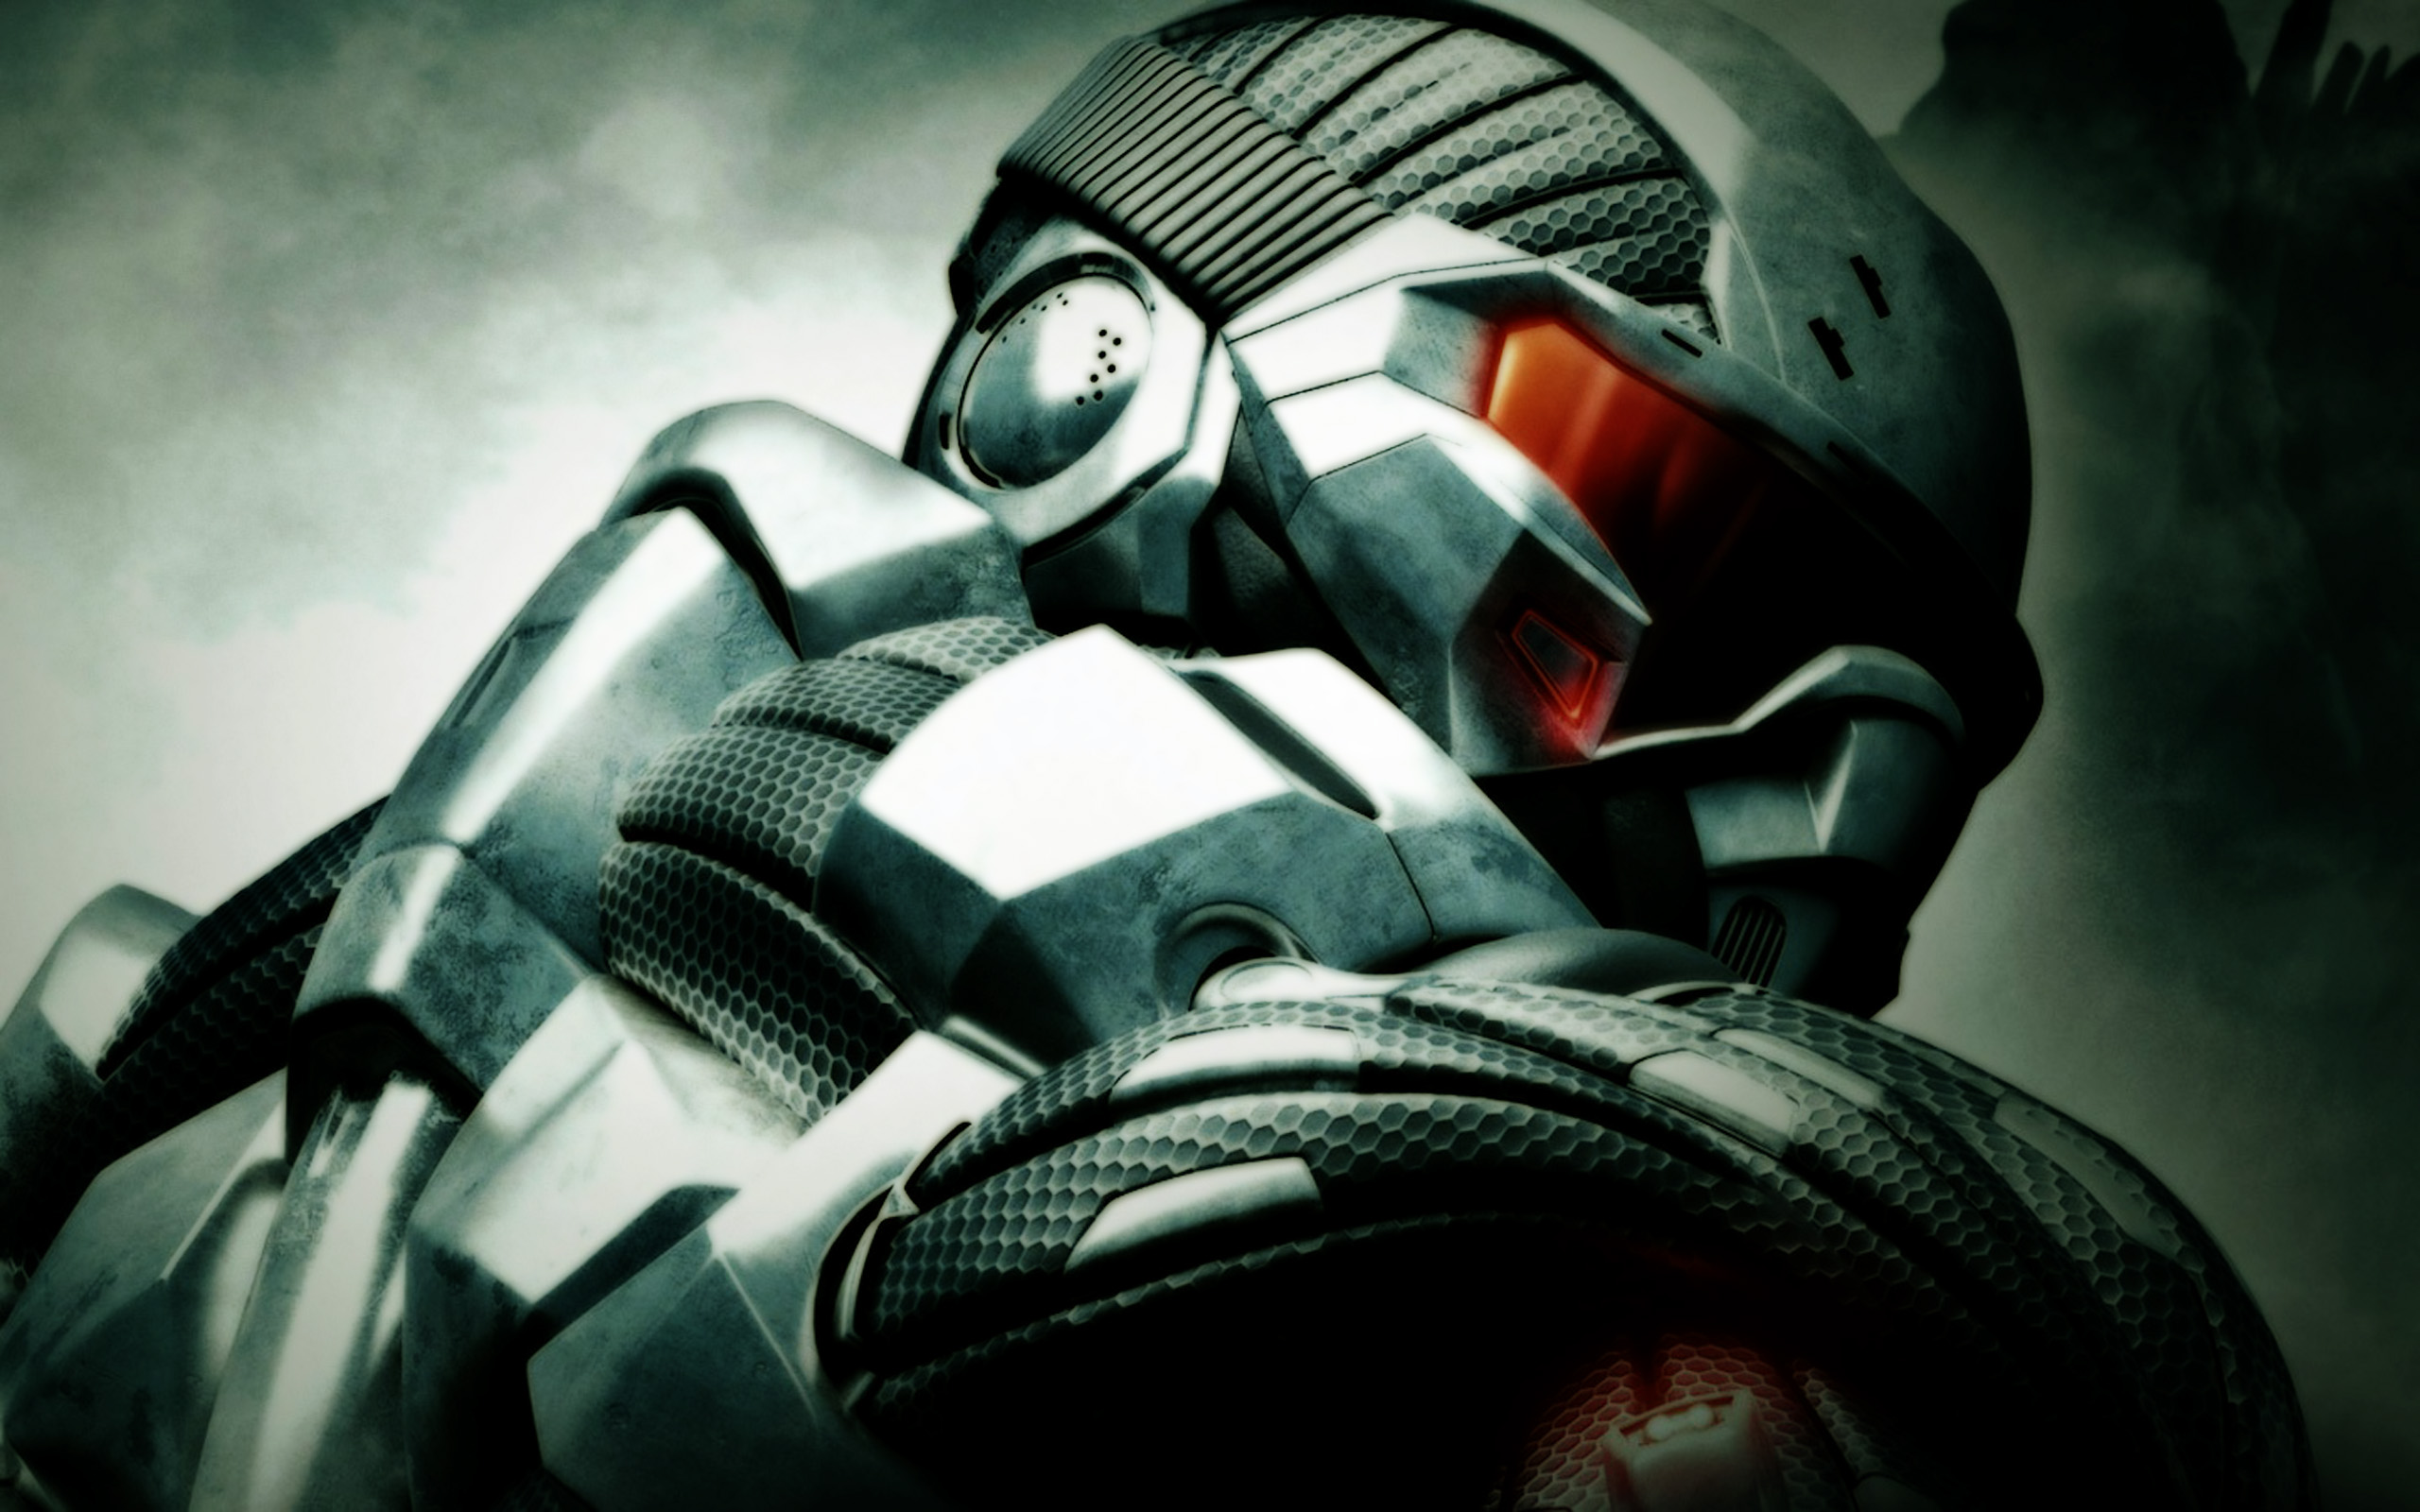 Awesome HD Robot Wallpapers Backgrounds For Download 2560x1600